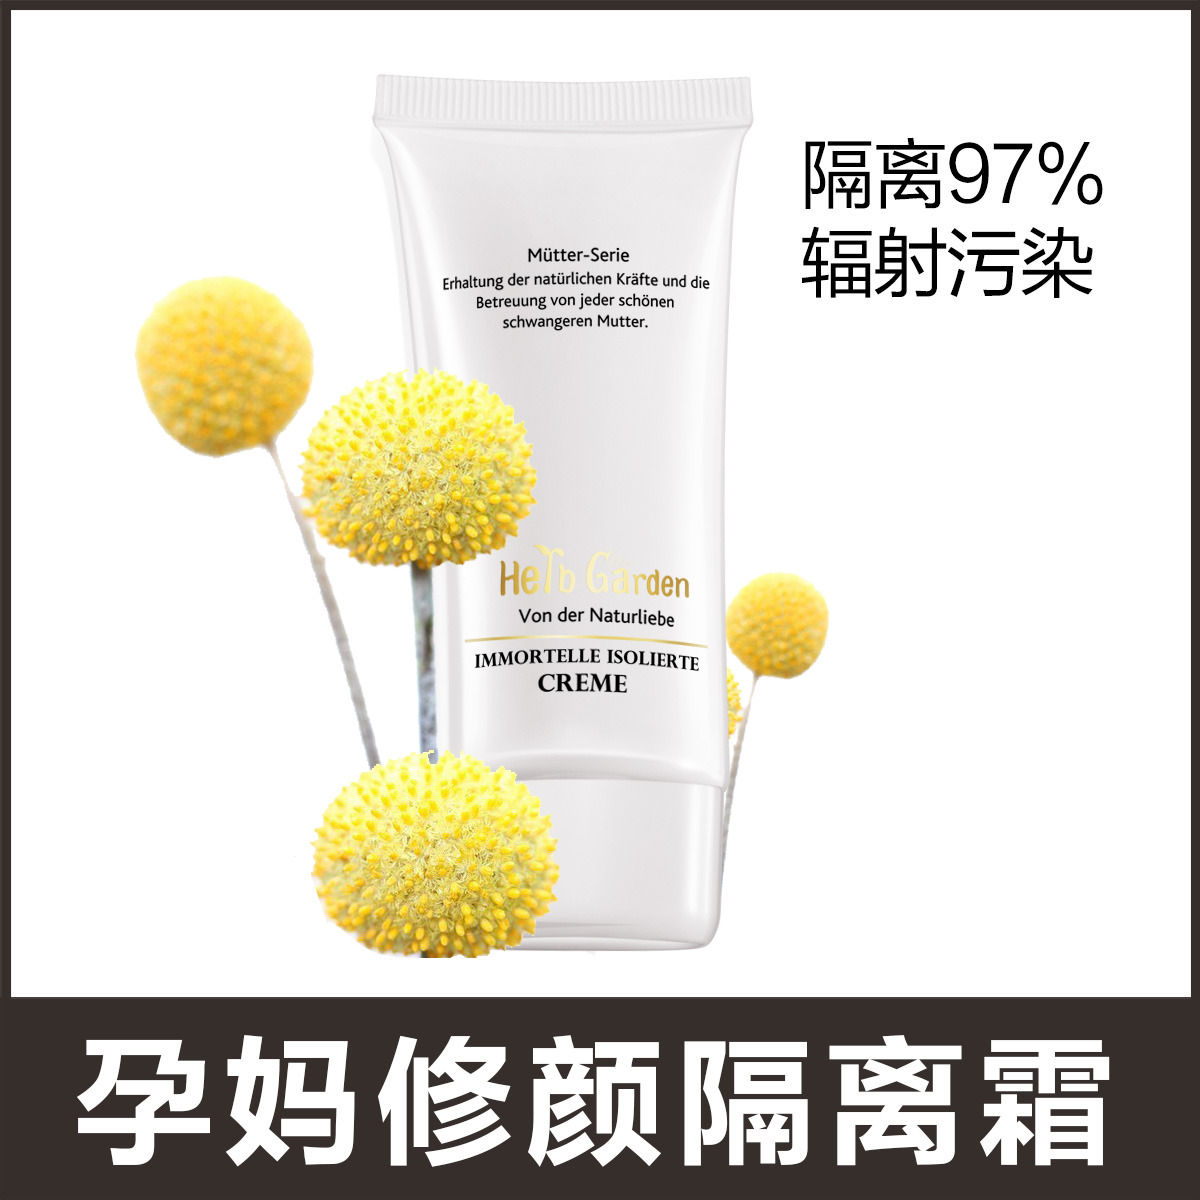 Pregnant women nude color natural color repair yan cream moisturizing cream brightens the complexion pollution repair bb cream enmu garden